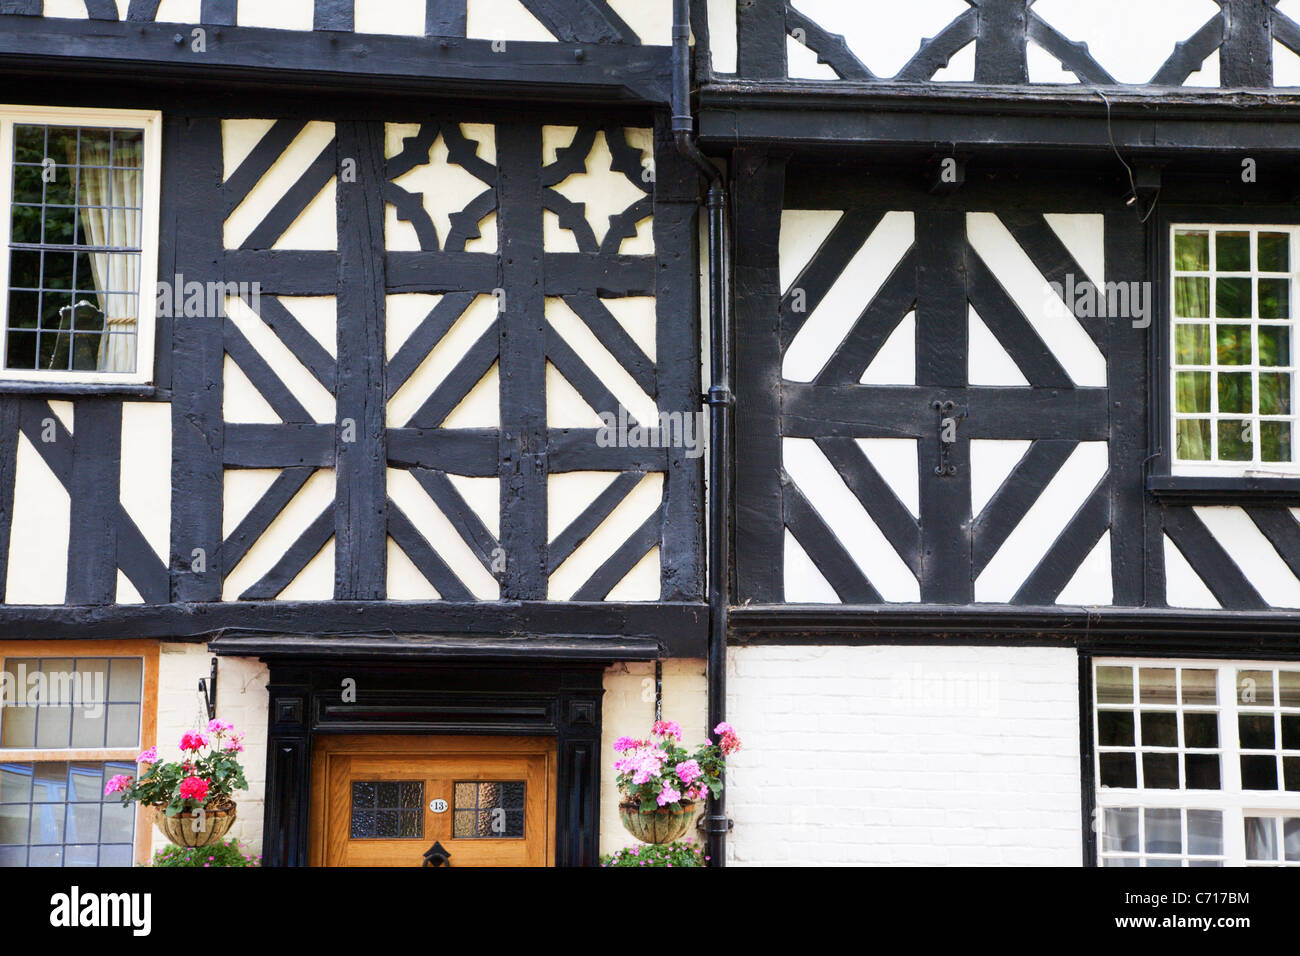 Half Timbered Building on Dinham Ludlow Shropshire England Stock Photo